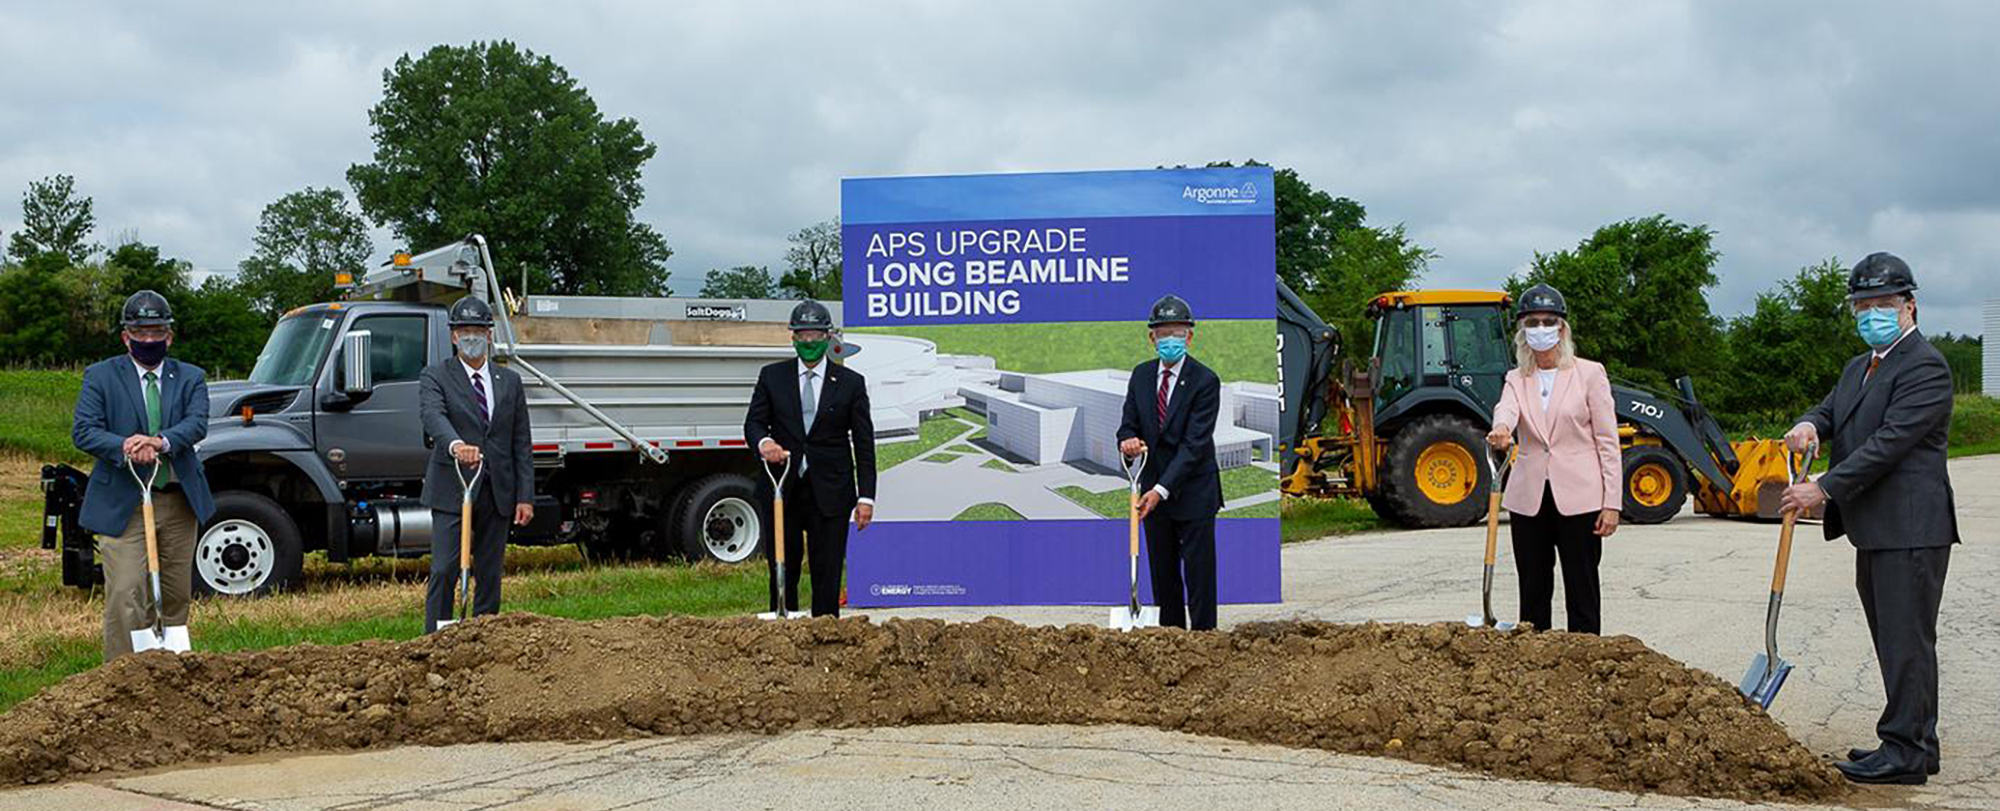 Leaders break ground on the Long Beamline Building, part of the upgrade to the APS.